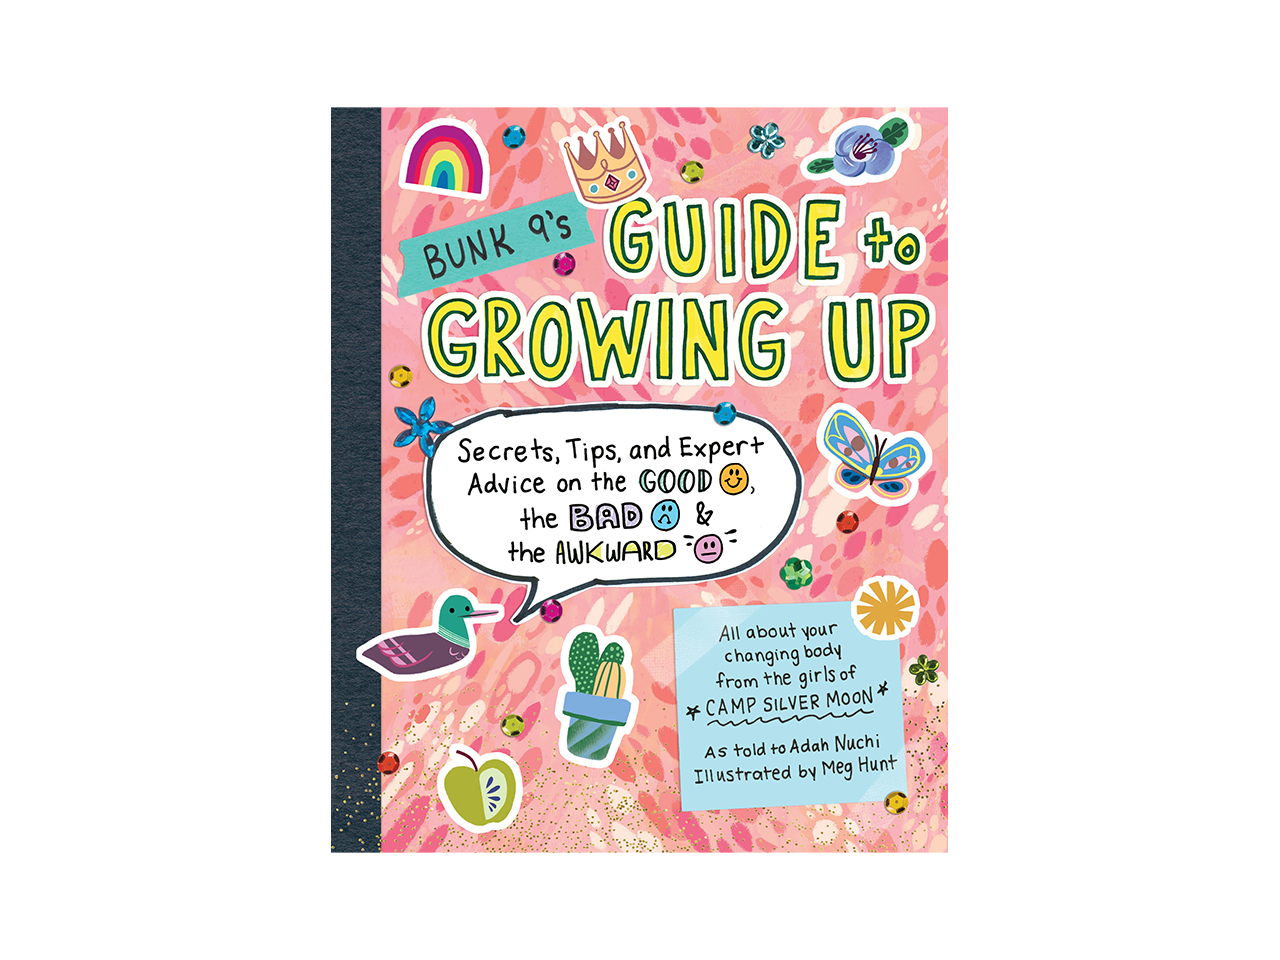 Cover art for Bunk 9's Guide to Growing Up. Looks like the front of a notebook with a pink background and cute stickers